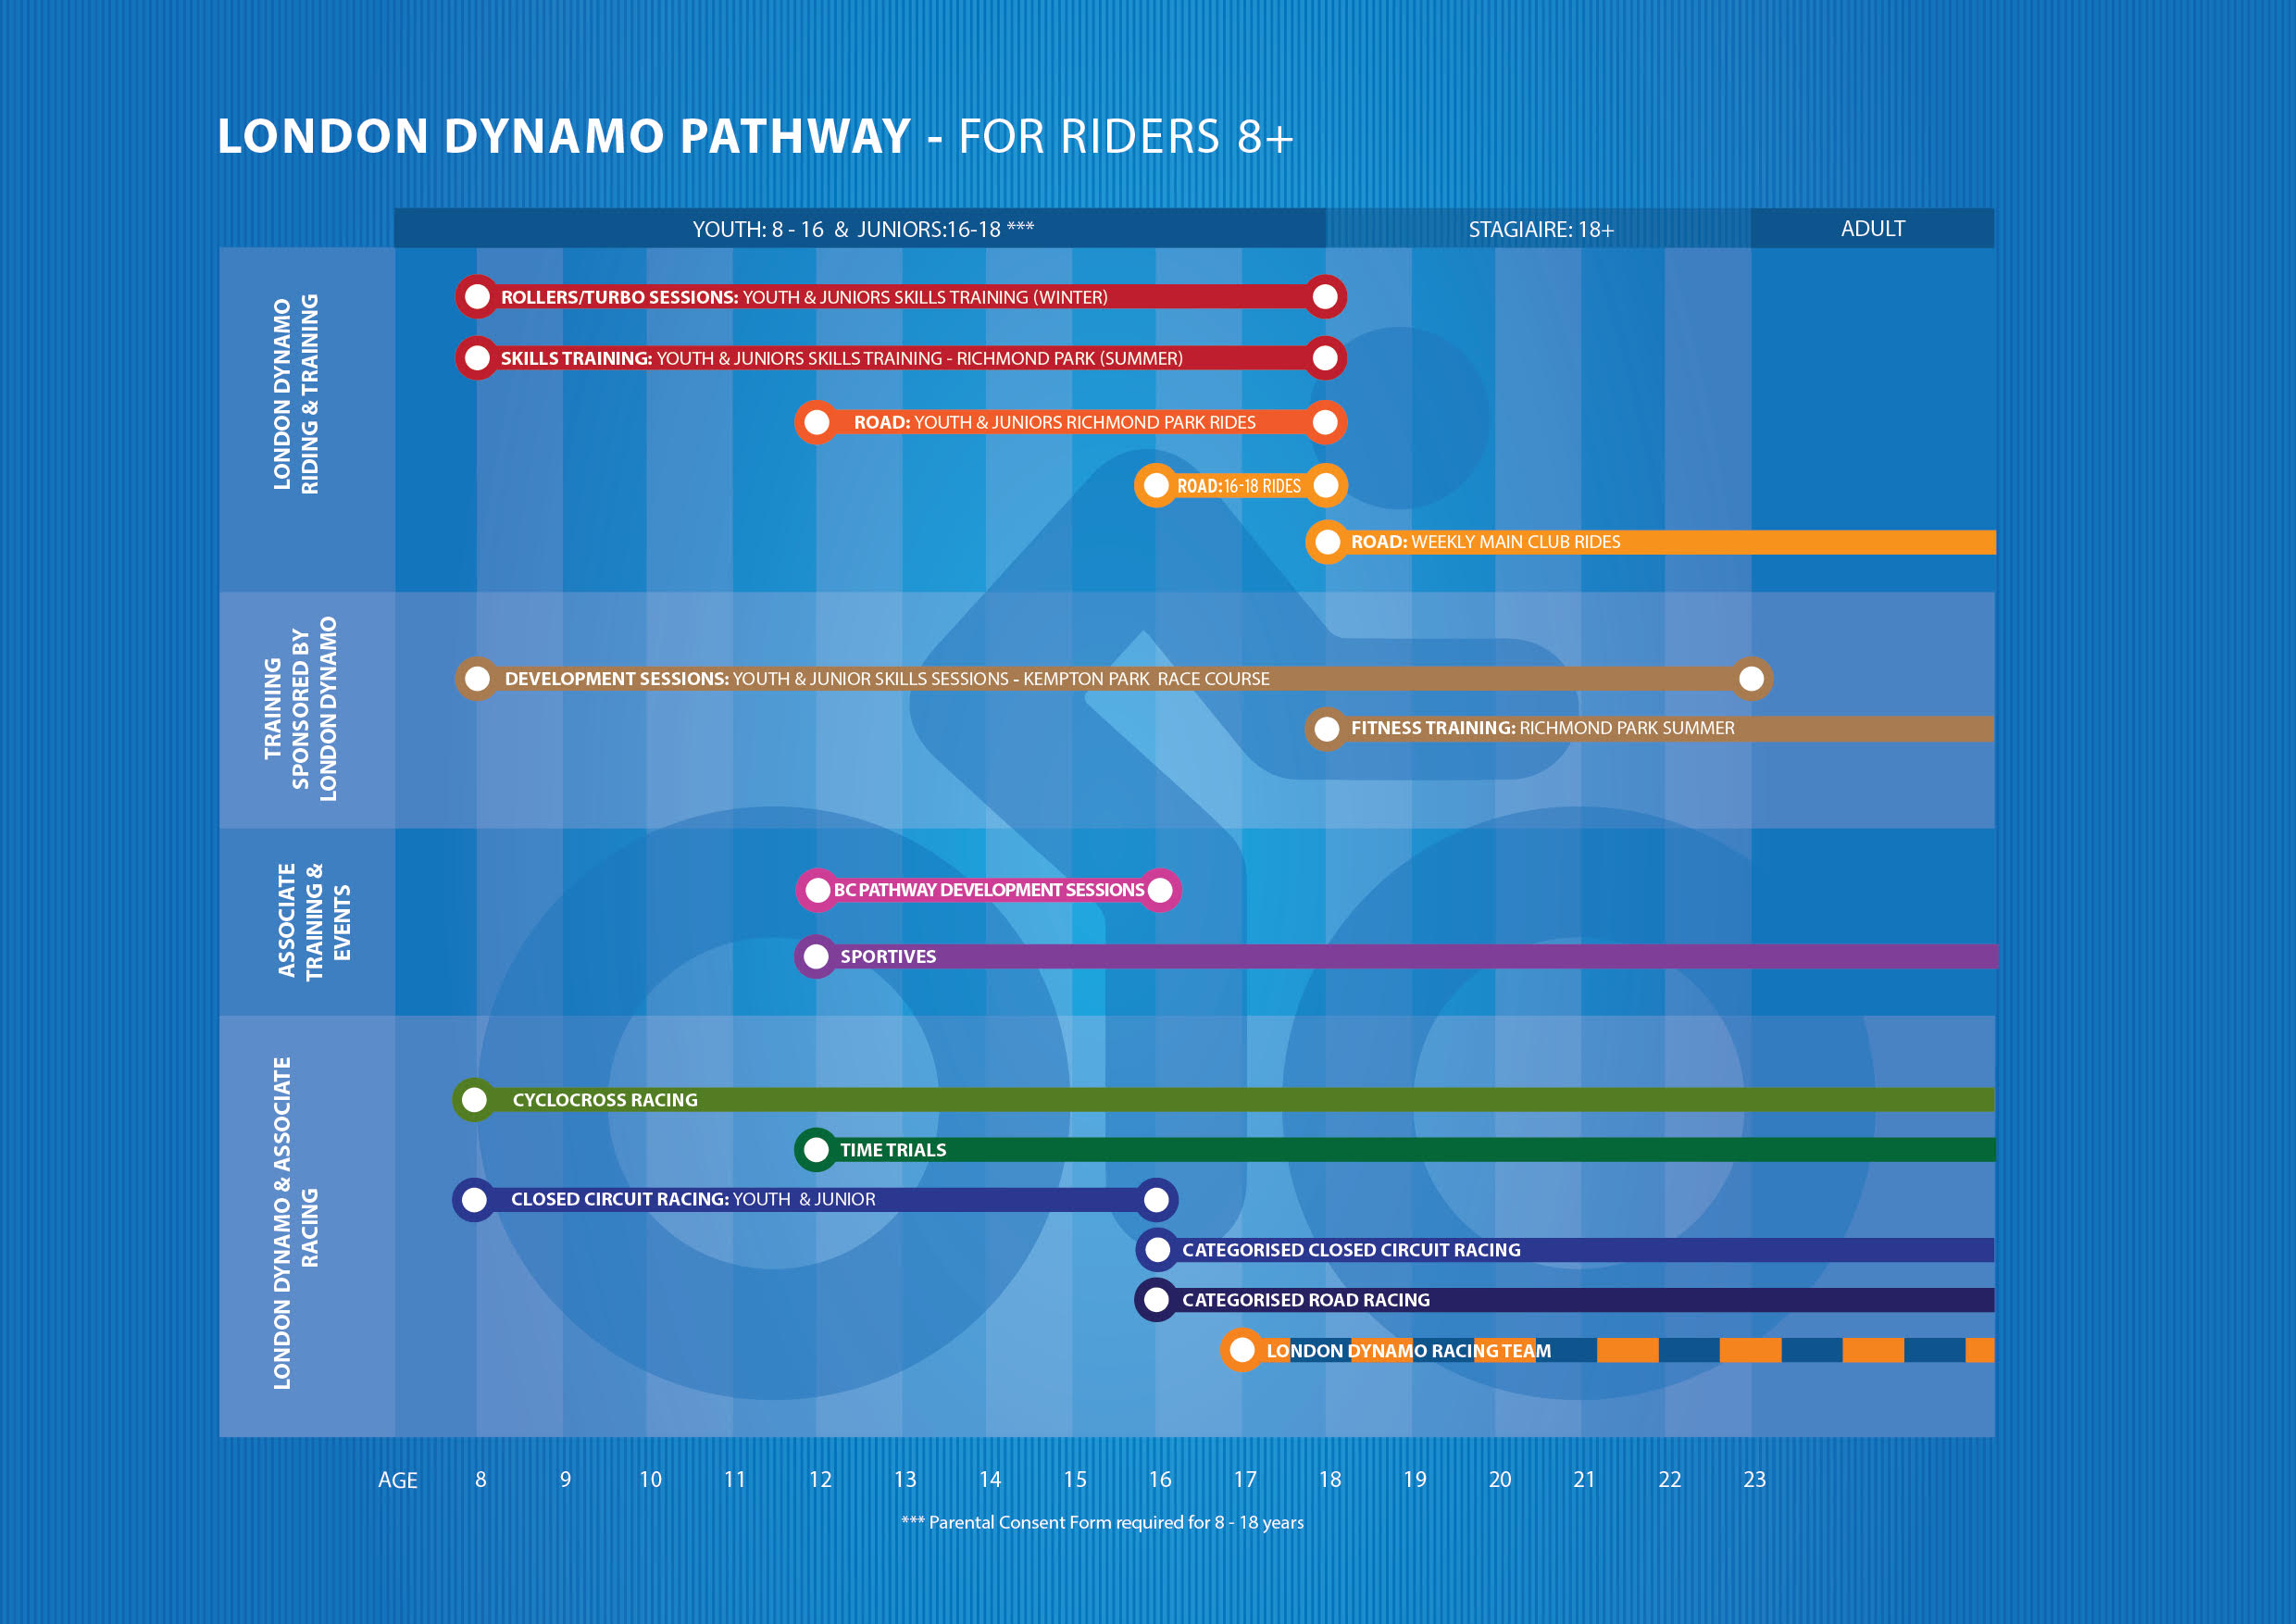 London Dynamo Pathway For Riders 8+